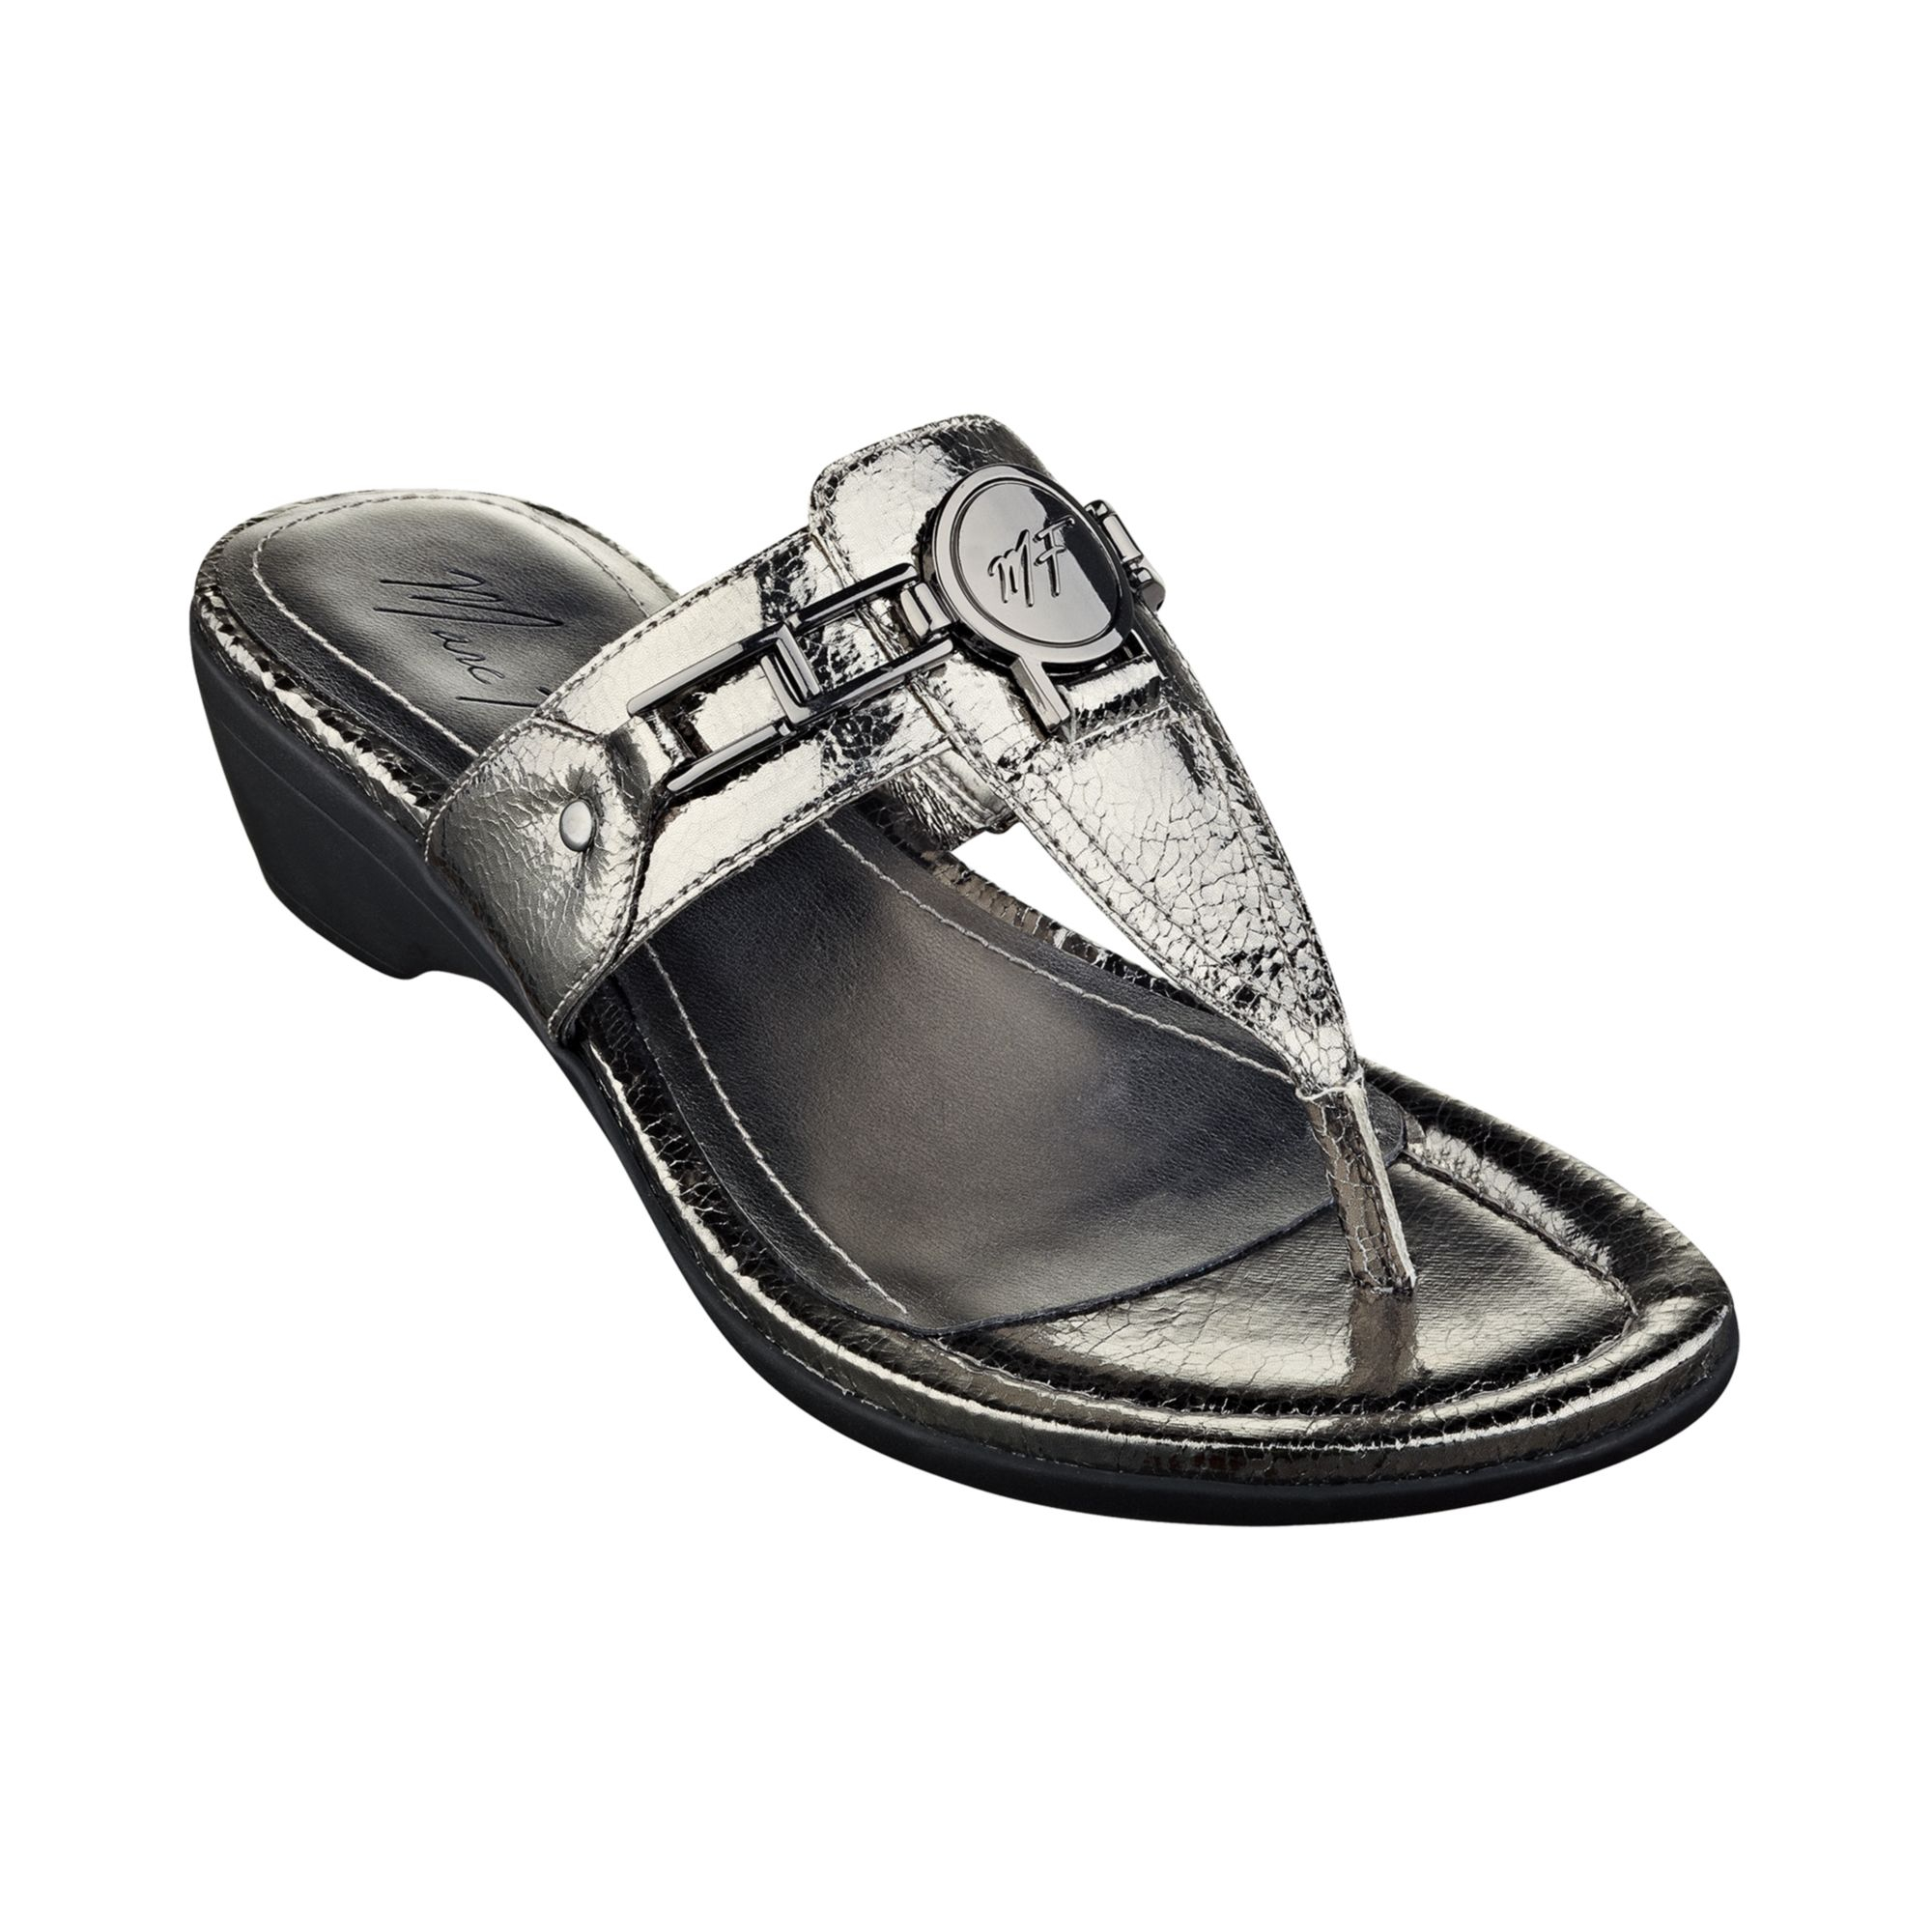 Marc Fisher Amina Thong Sandals In Silver Silver Crackle